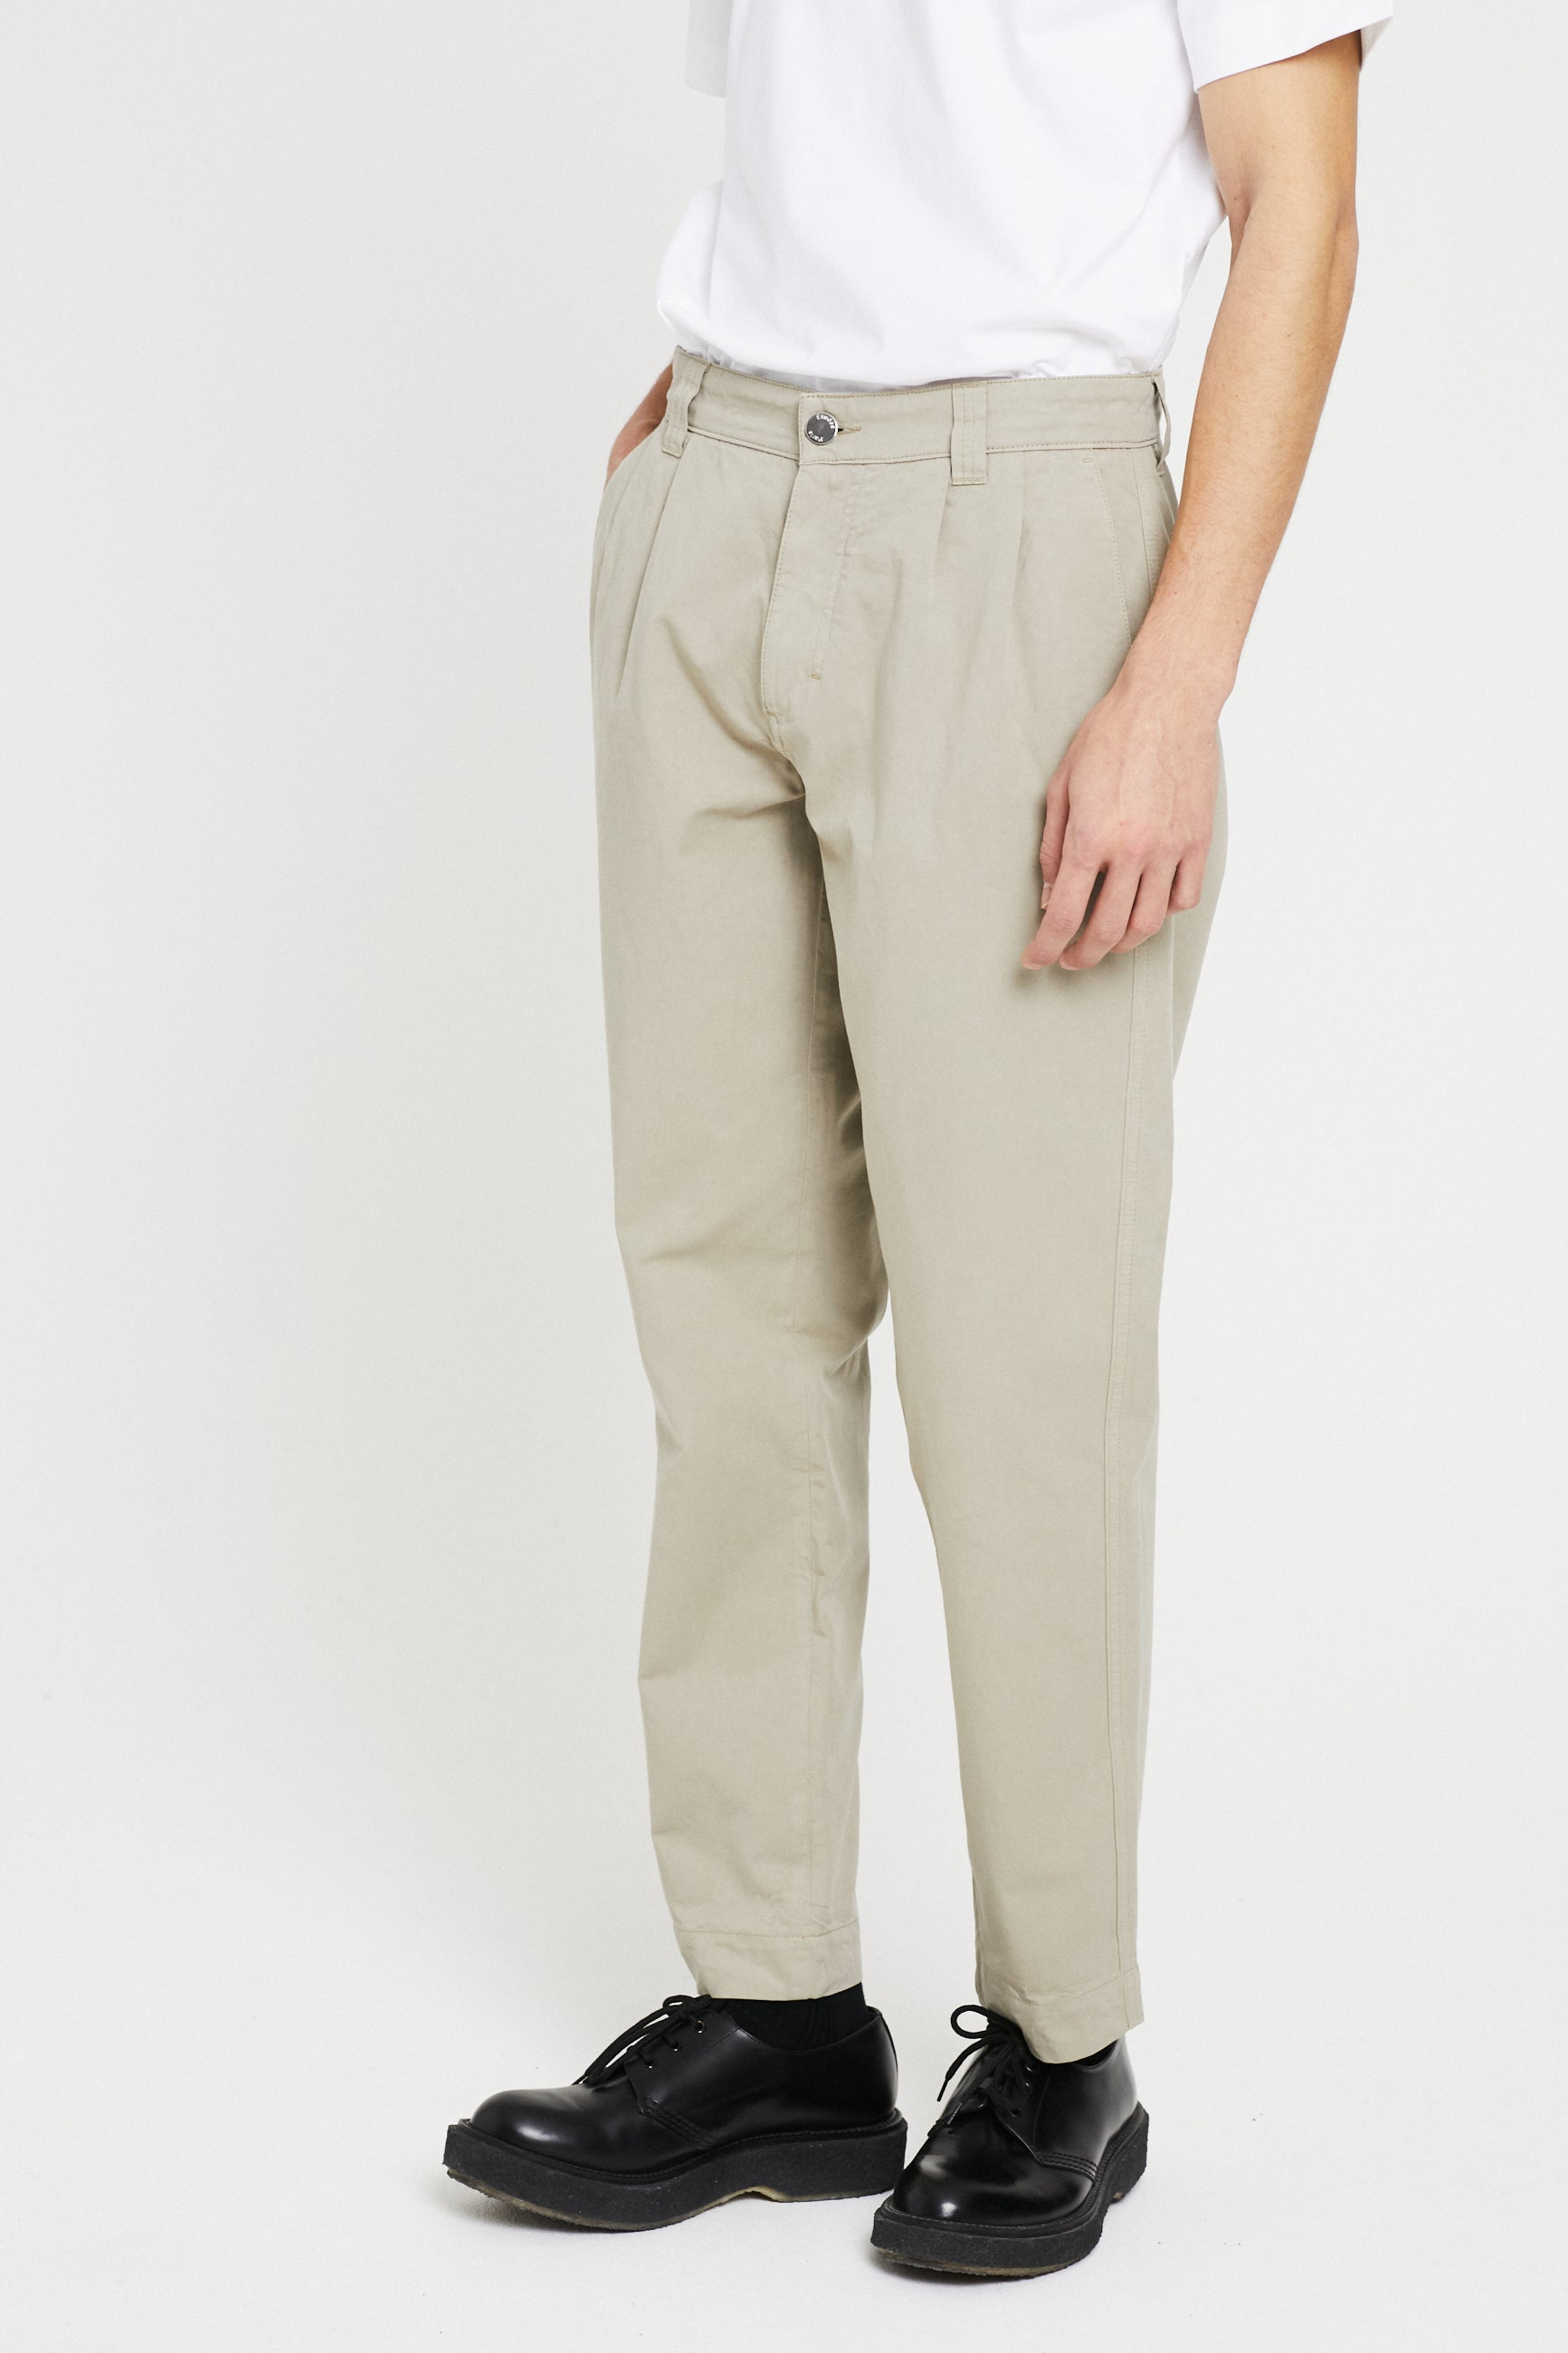 Études Cinema Garment Dyed Beige Trousers 3